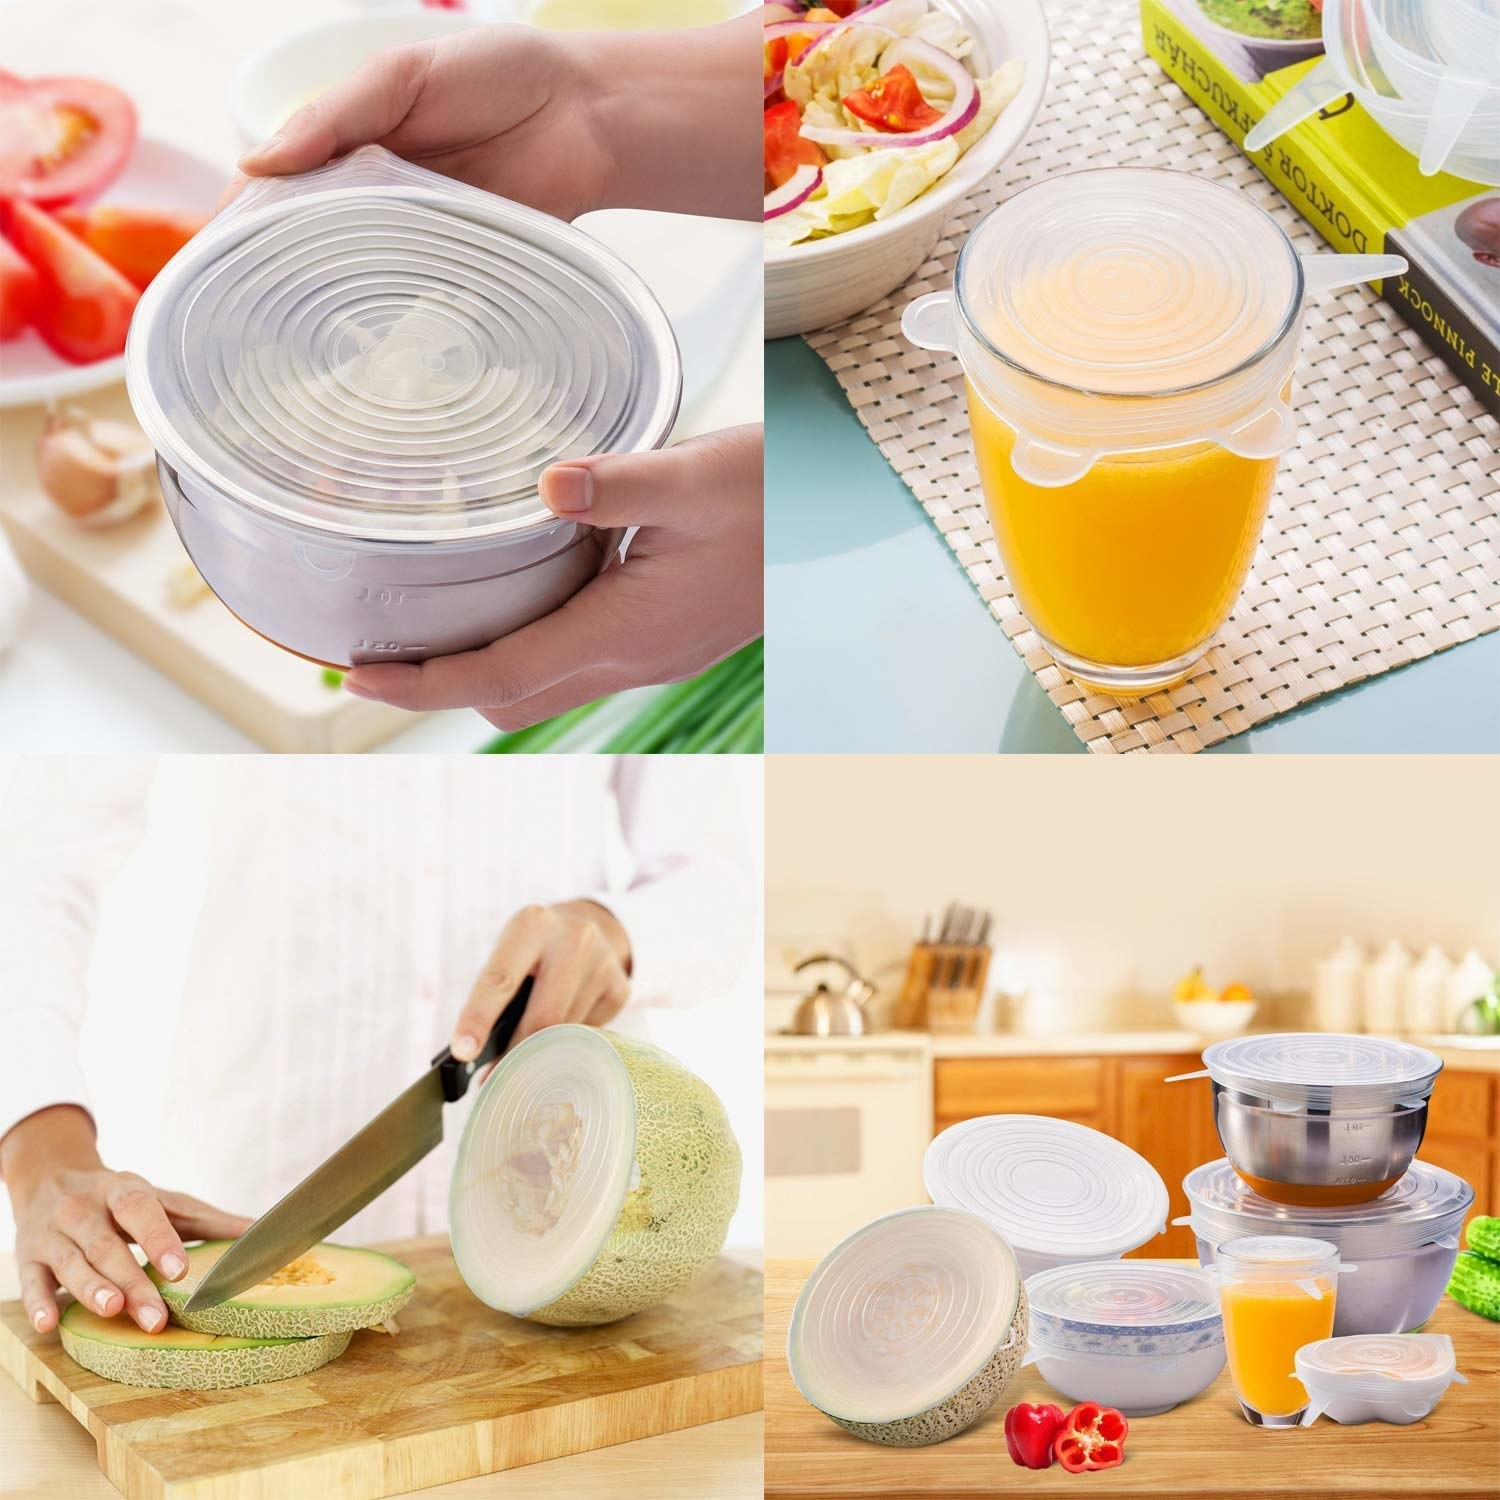 Various uses of the stretchable silicone lids